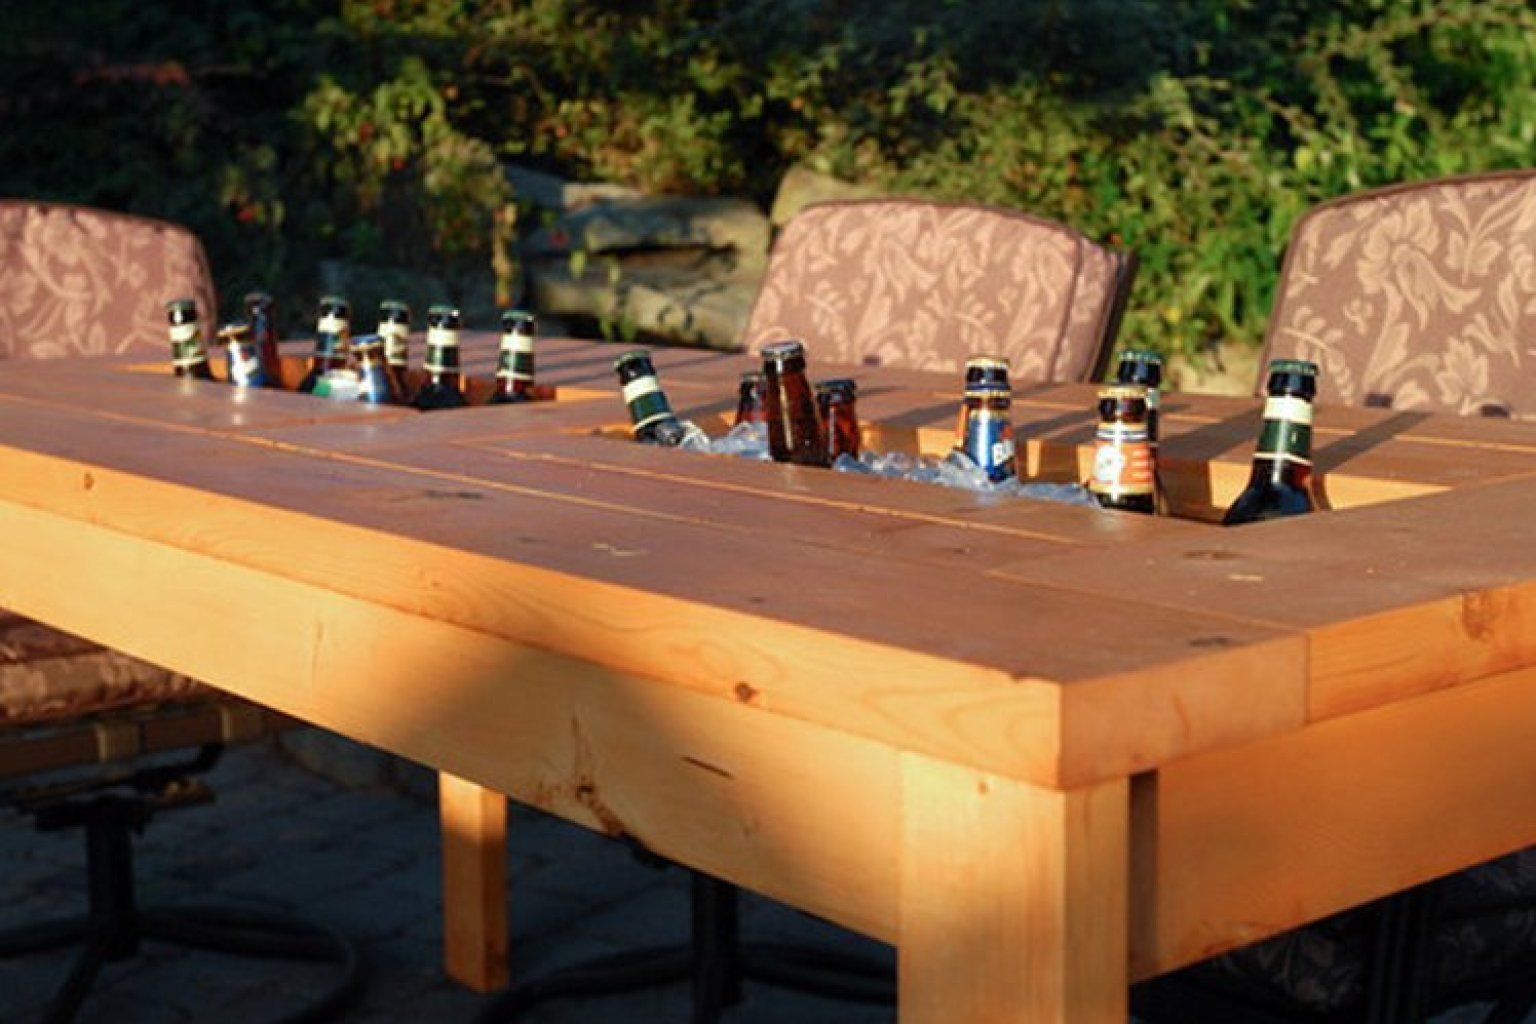 A DIY Table With Built-In Drink Coolers Is The Perfect Way ...